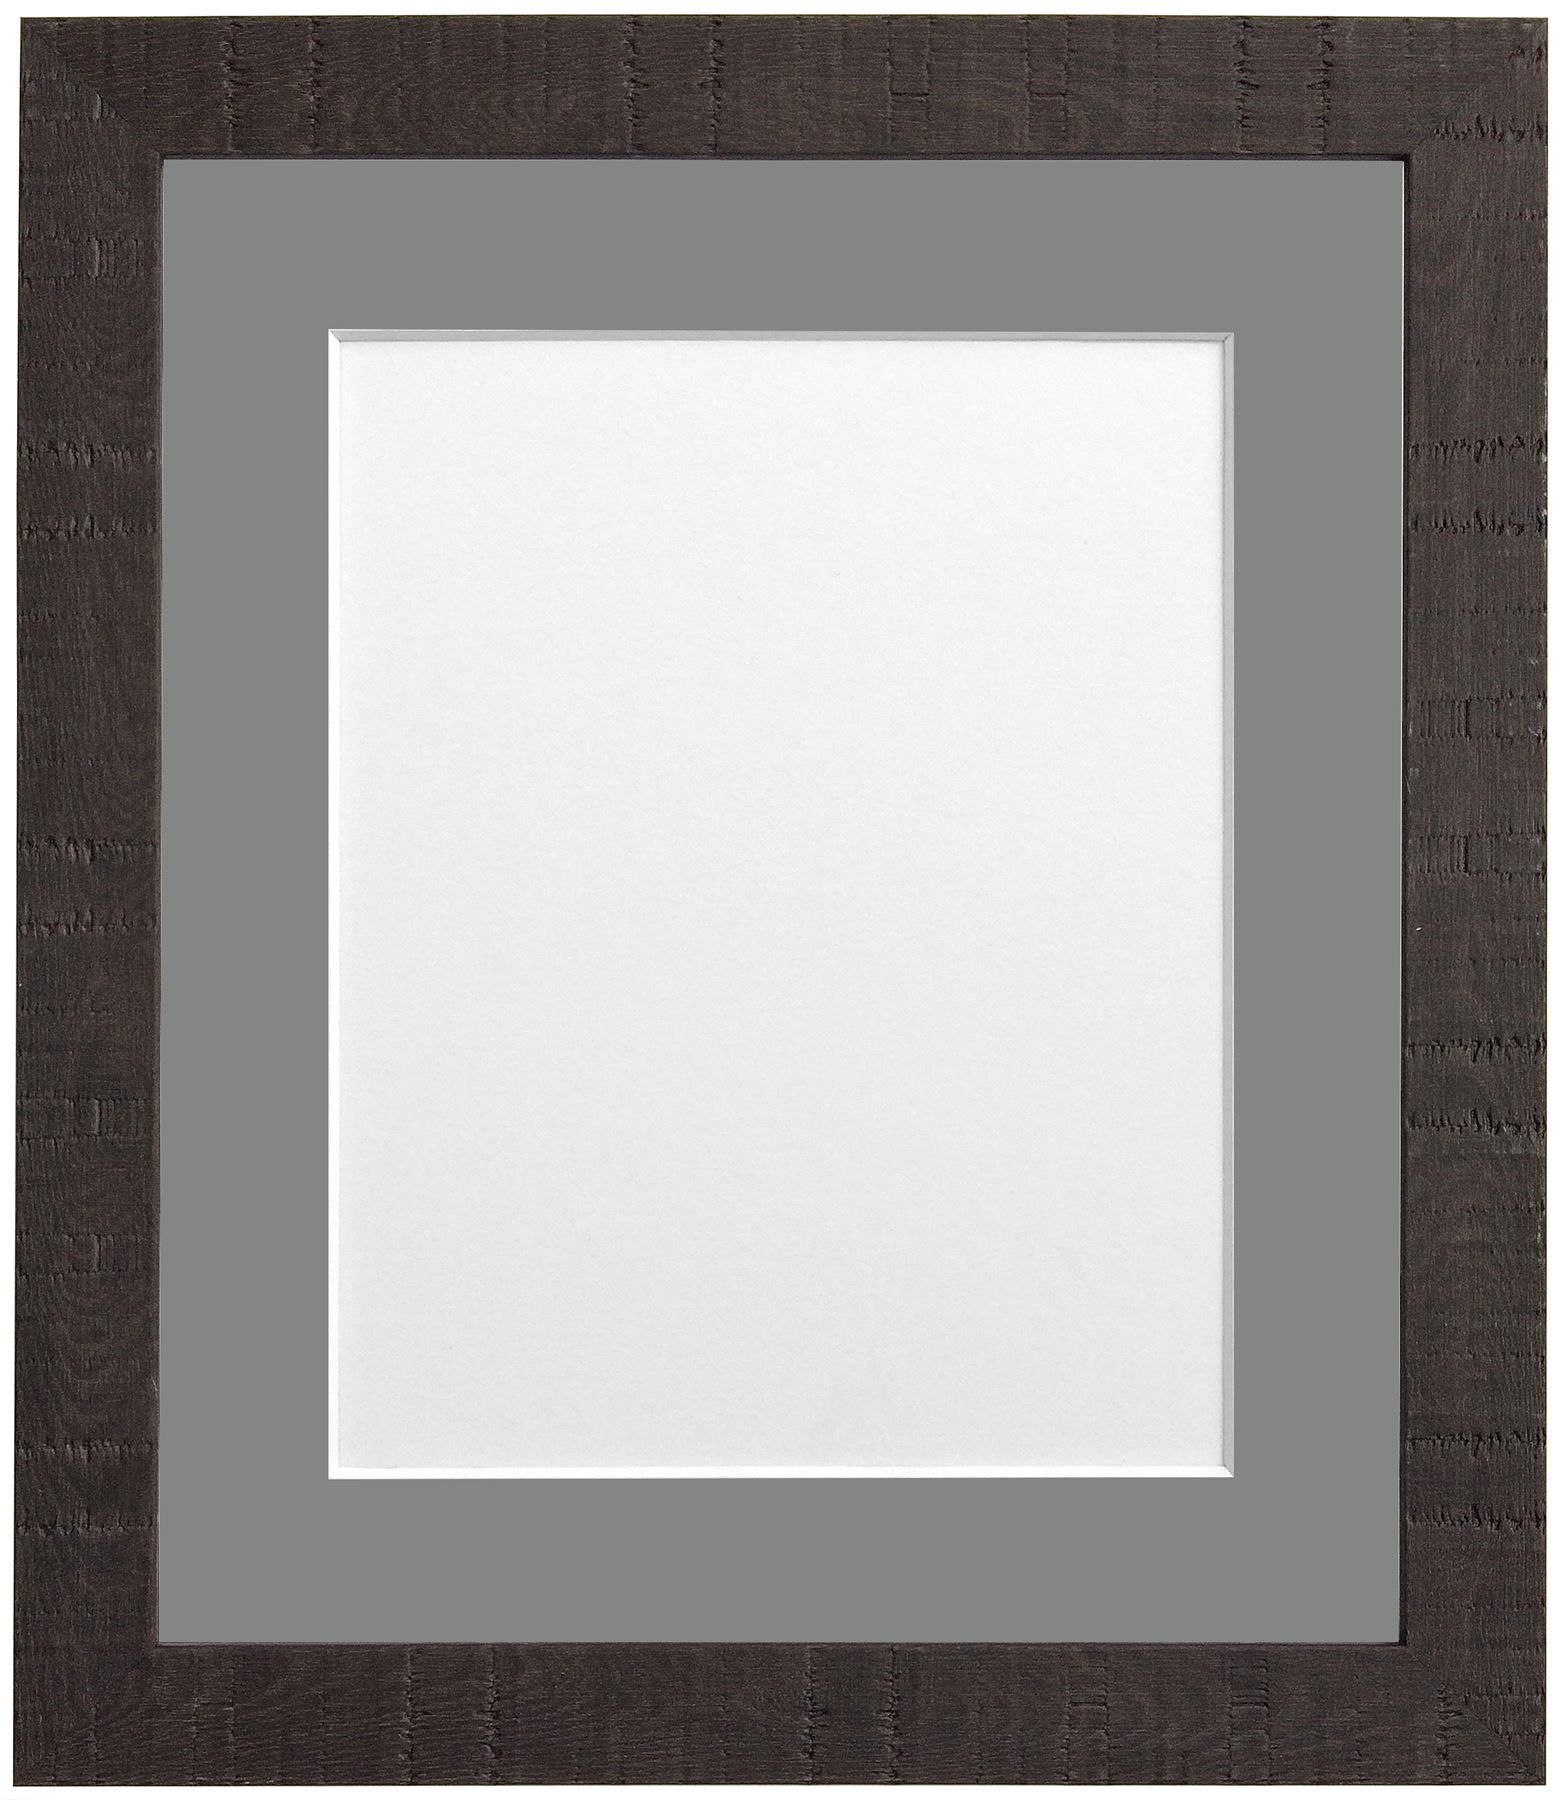 Deep Grain Dark Brown Picture Photo Frames With Choice of Seven ...